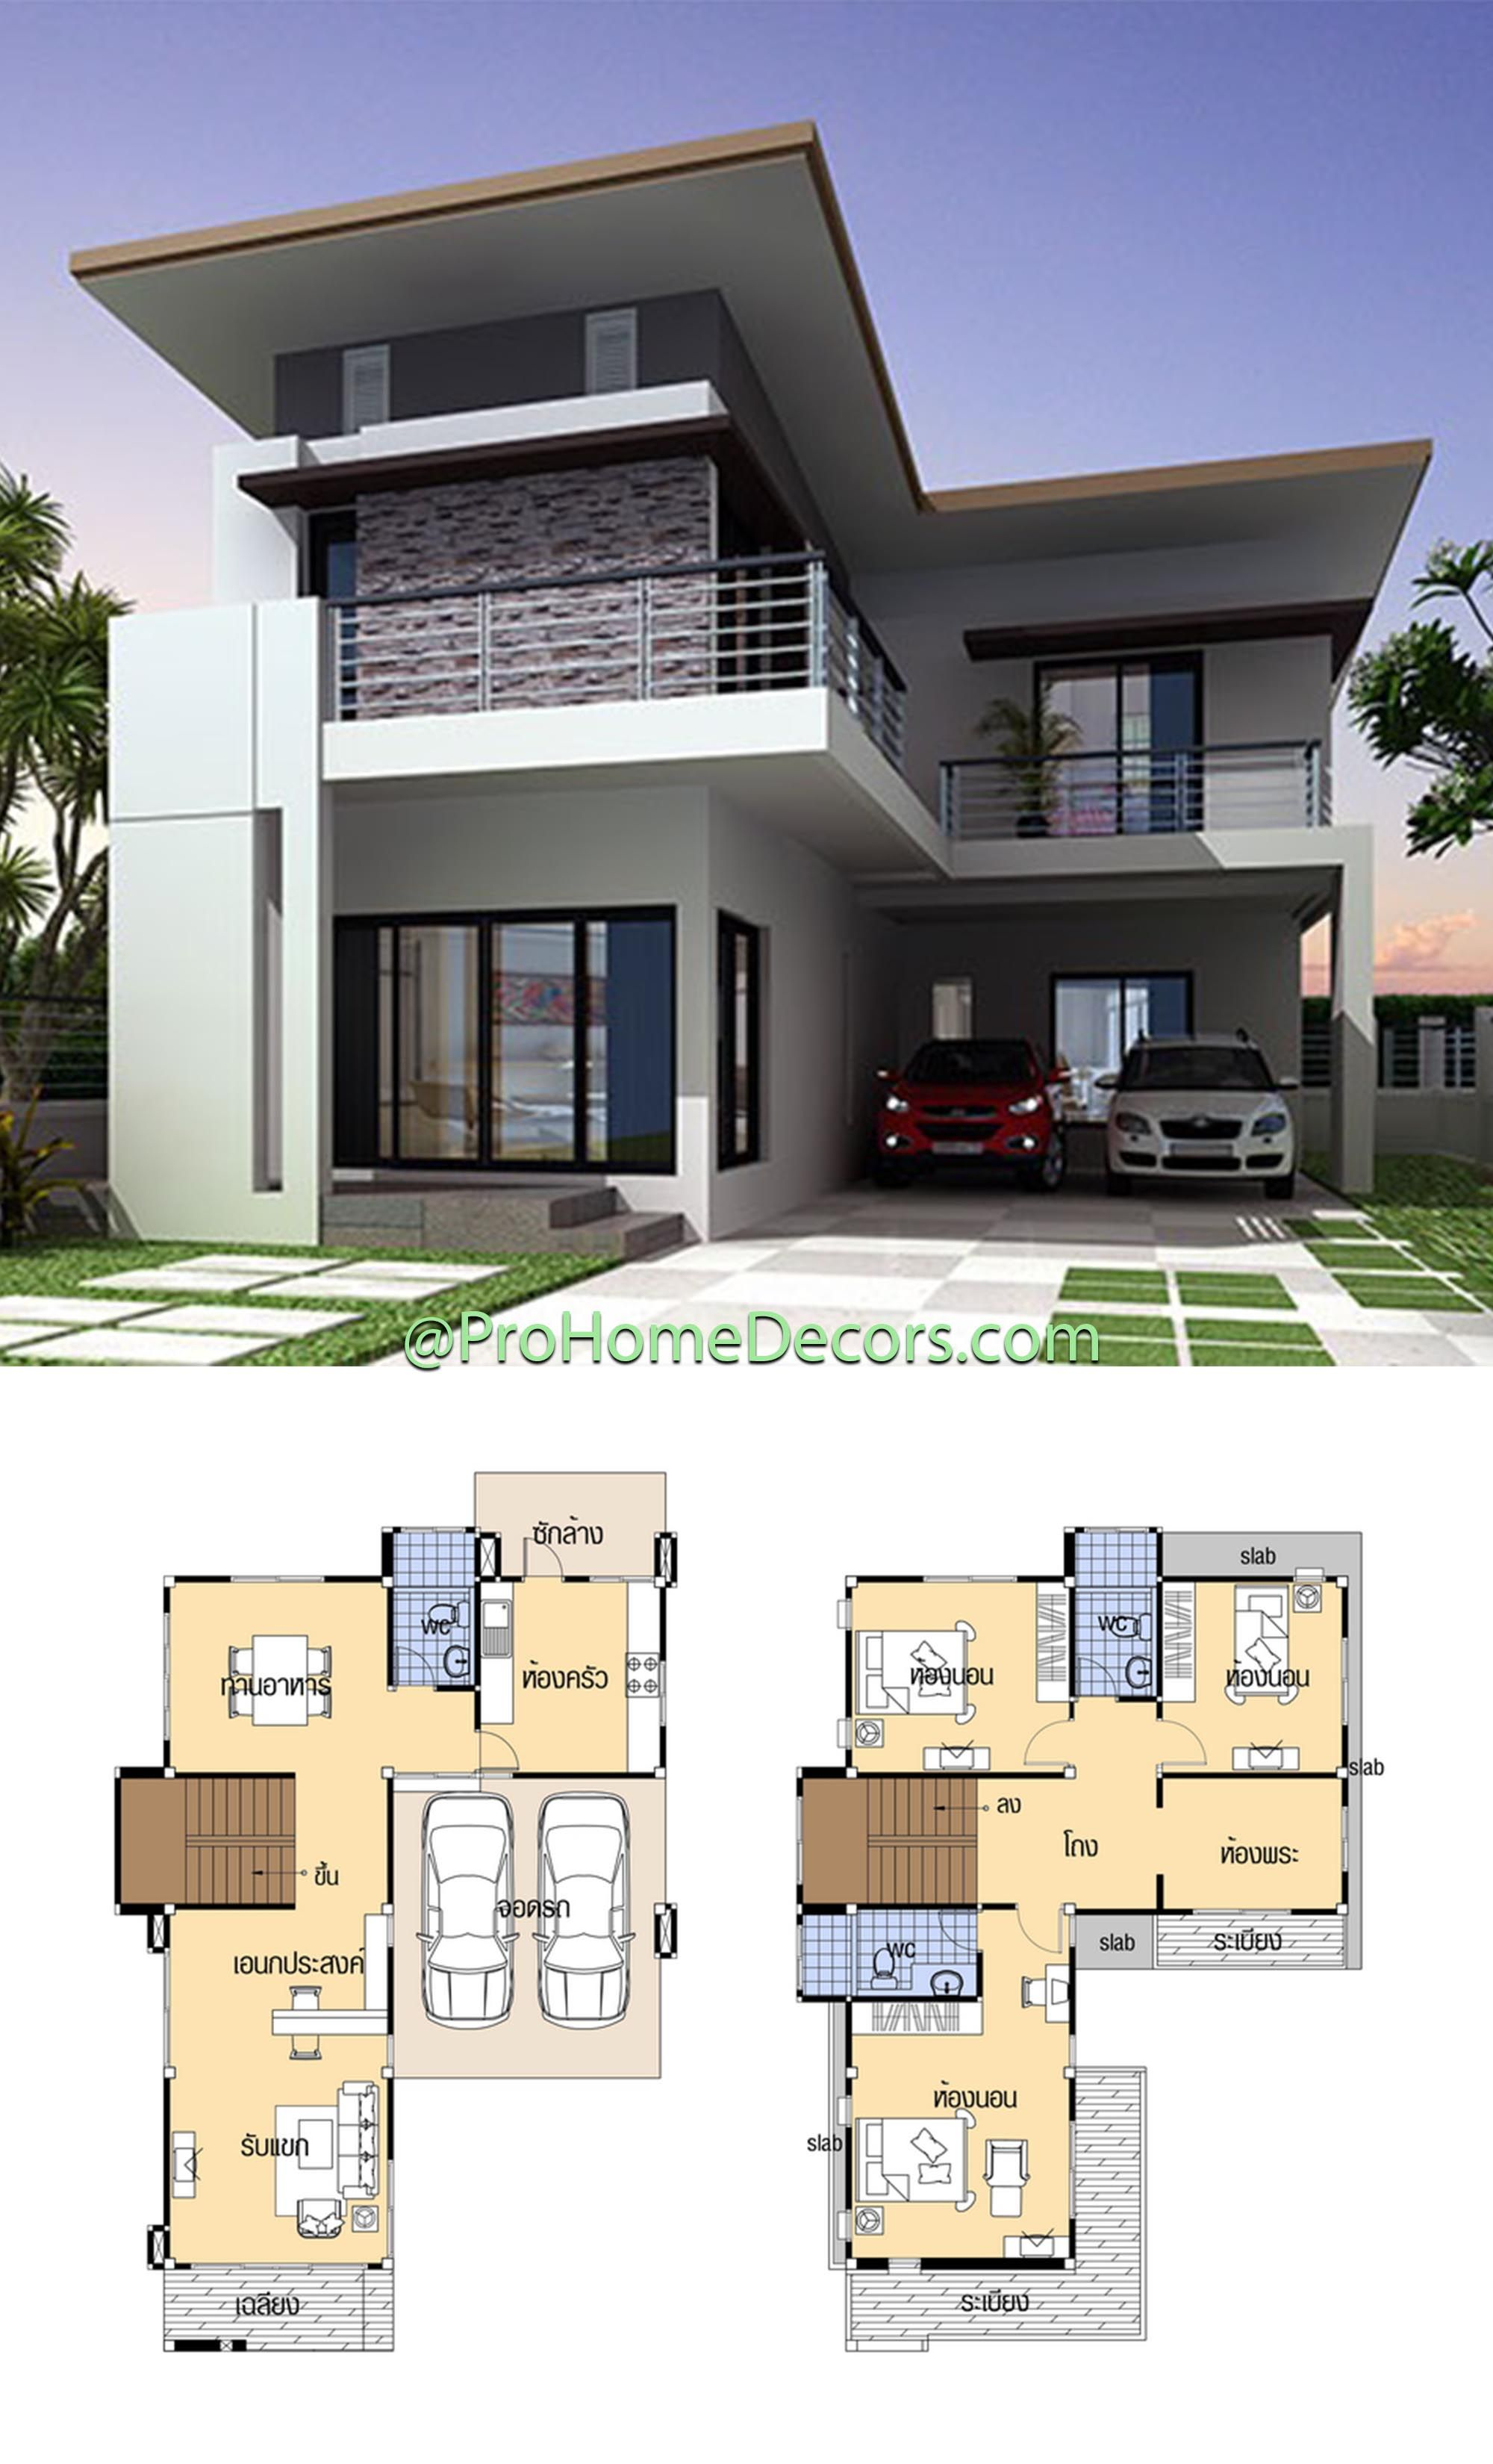 House Plans 9x14 With 4 Beds House Plans Model House Plan Simple House Design